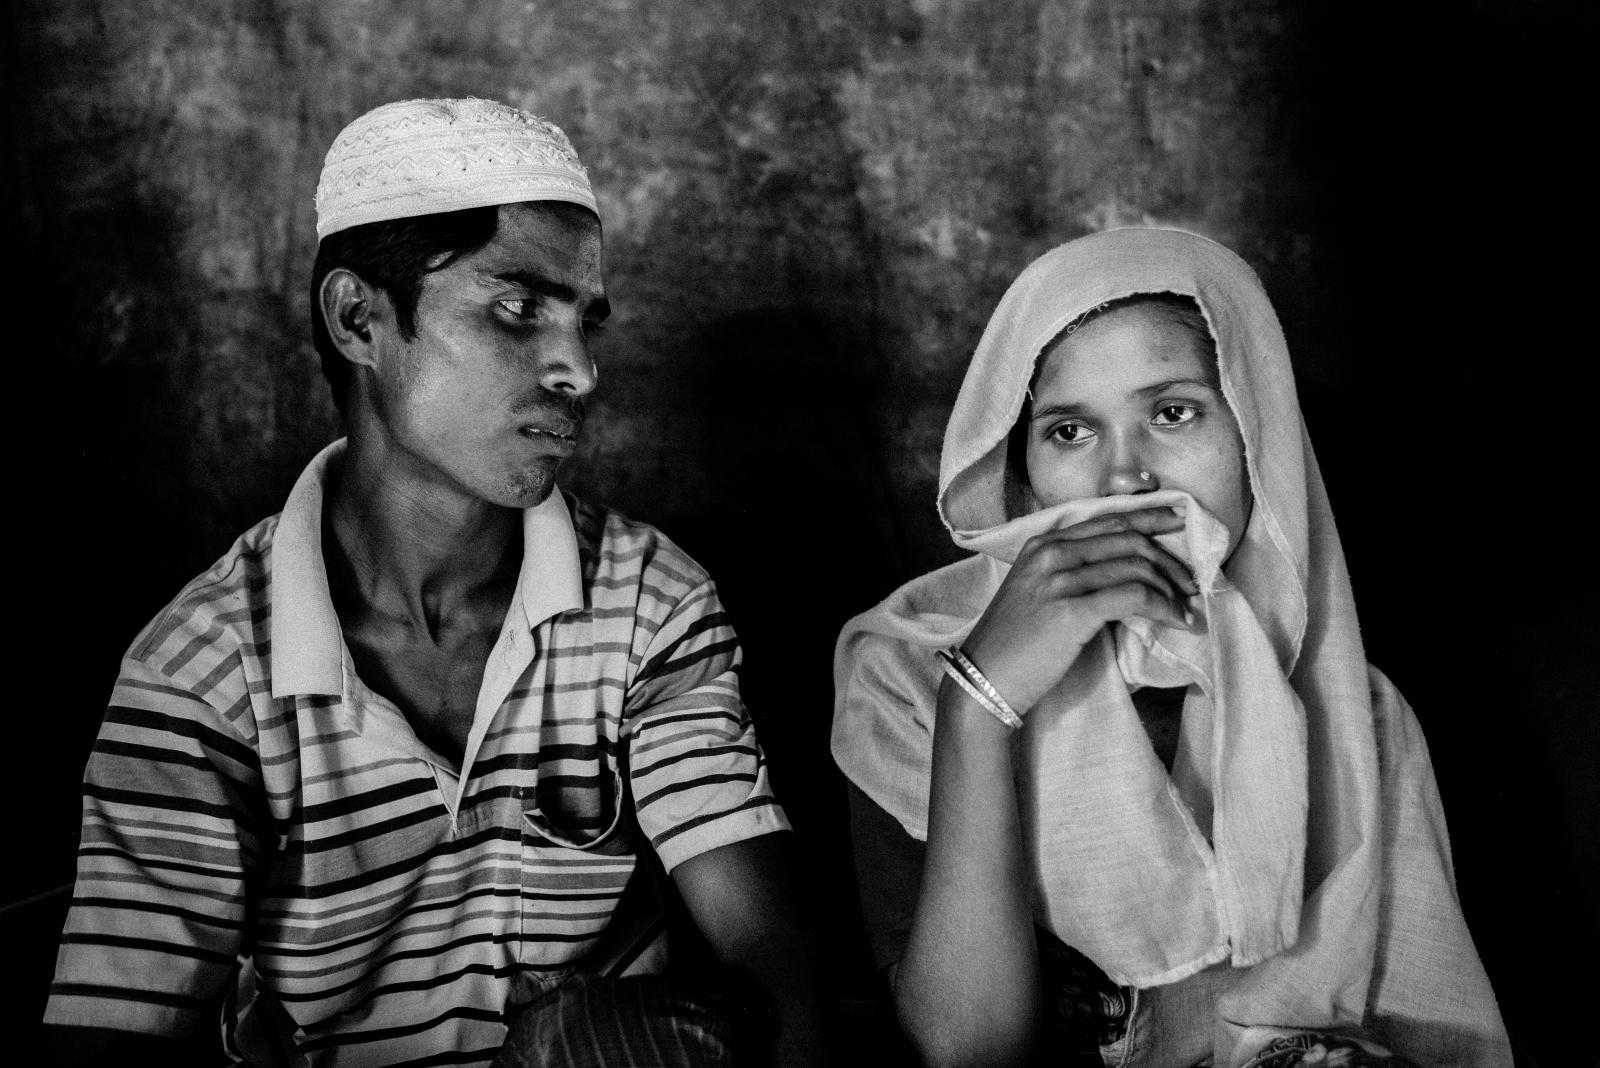 Mohammed Hossain, 25, and Rashida Begum, 23, husband and wife from Tula Toli village.  The village of Tula Toli was burnt to the ground with men being killed and dumped in a mass grave and many women subjected to sexual violence.  Rashida was raped by Myanmar soldiers and also suffered having her throat sliced open.